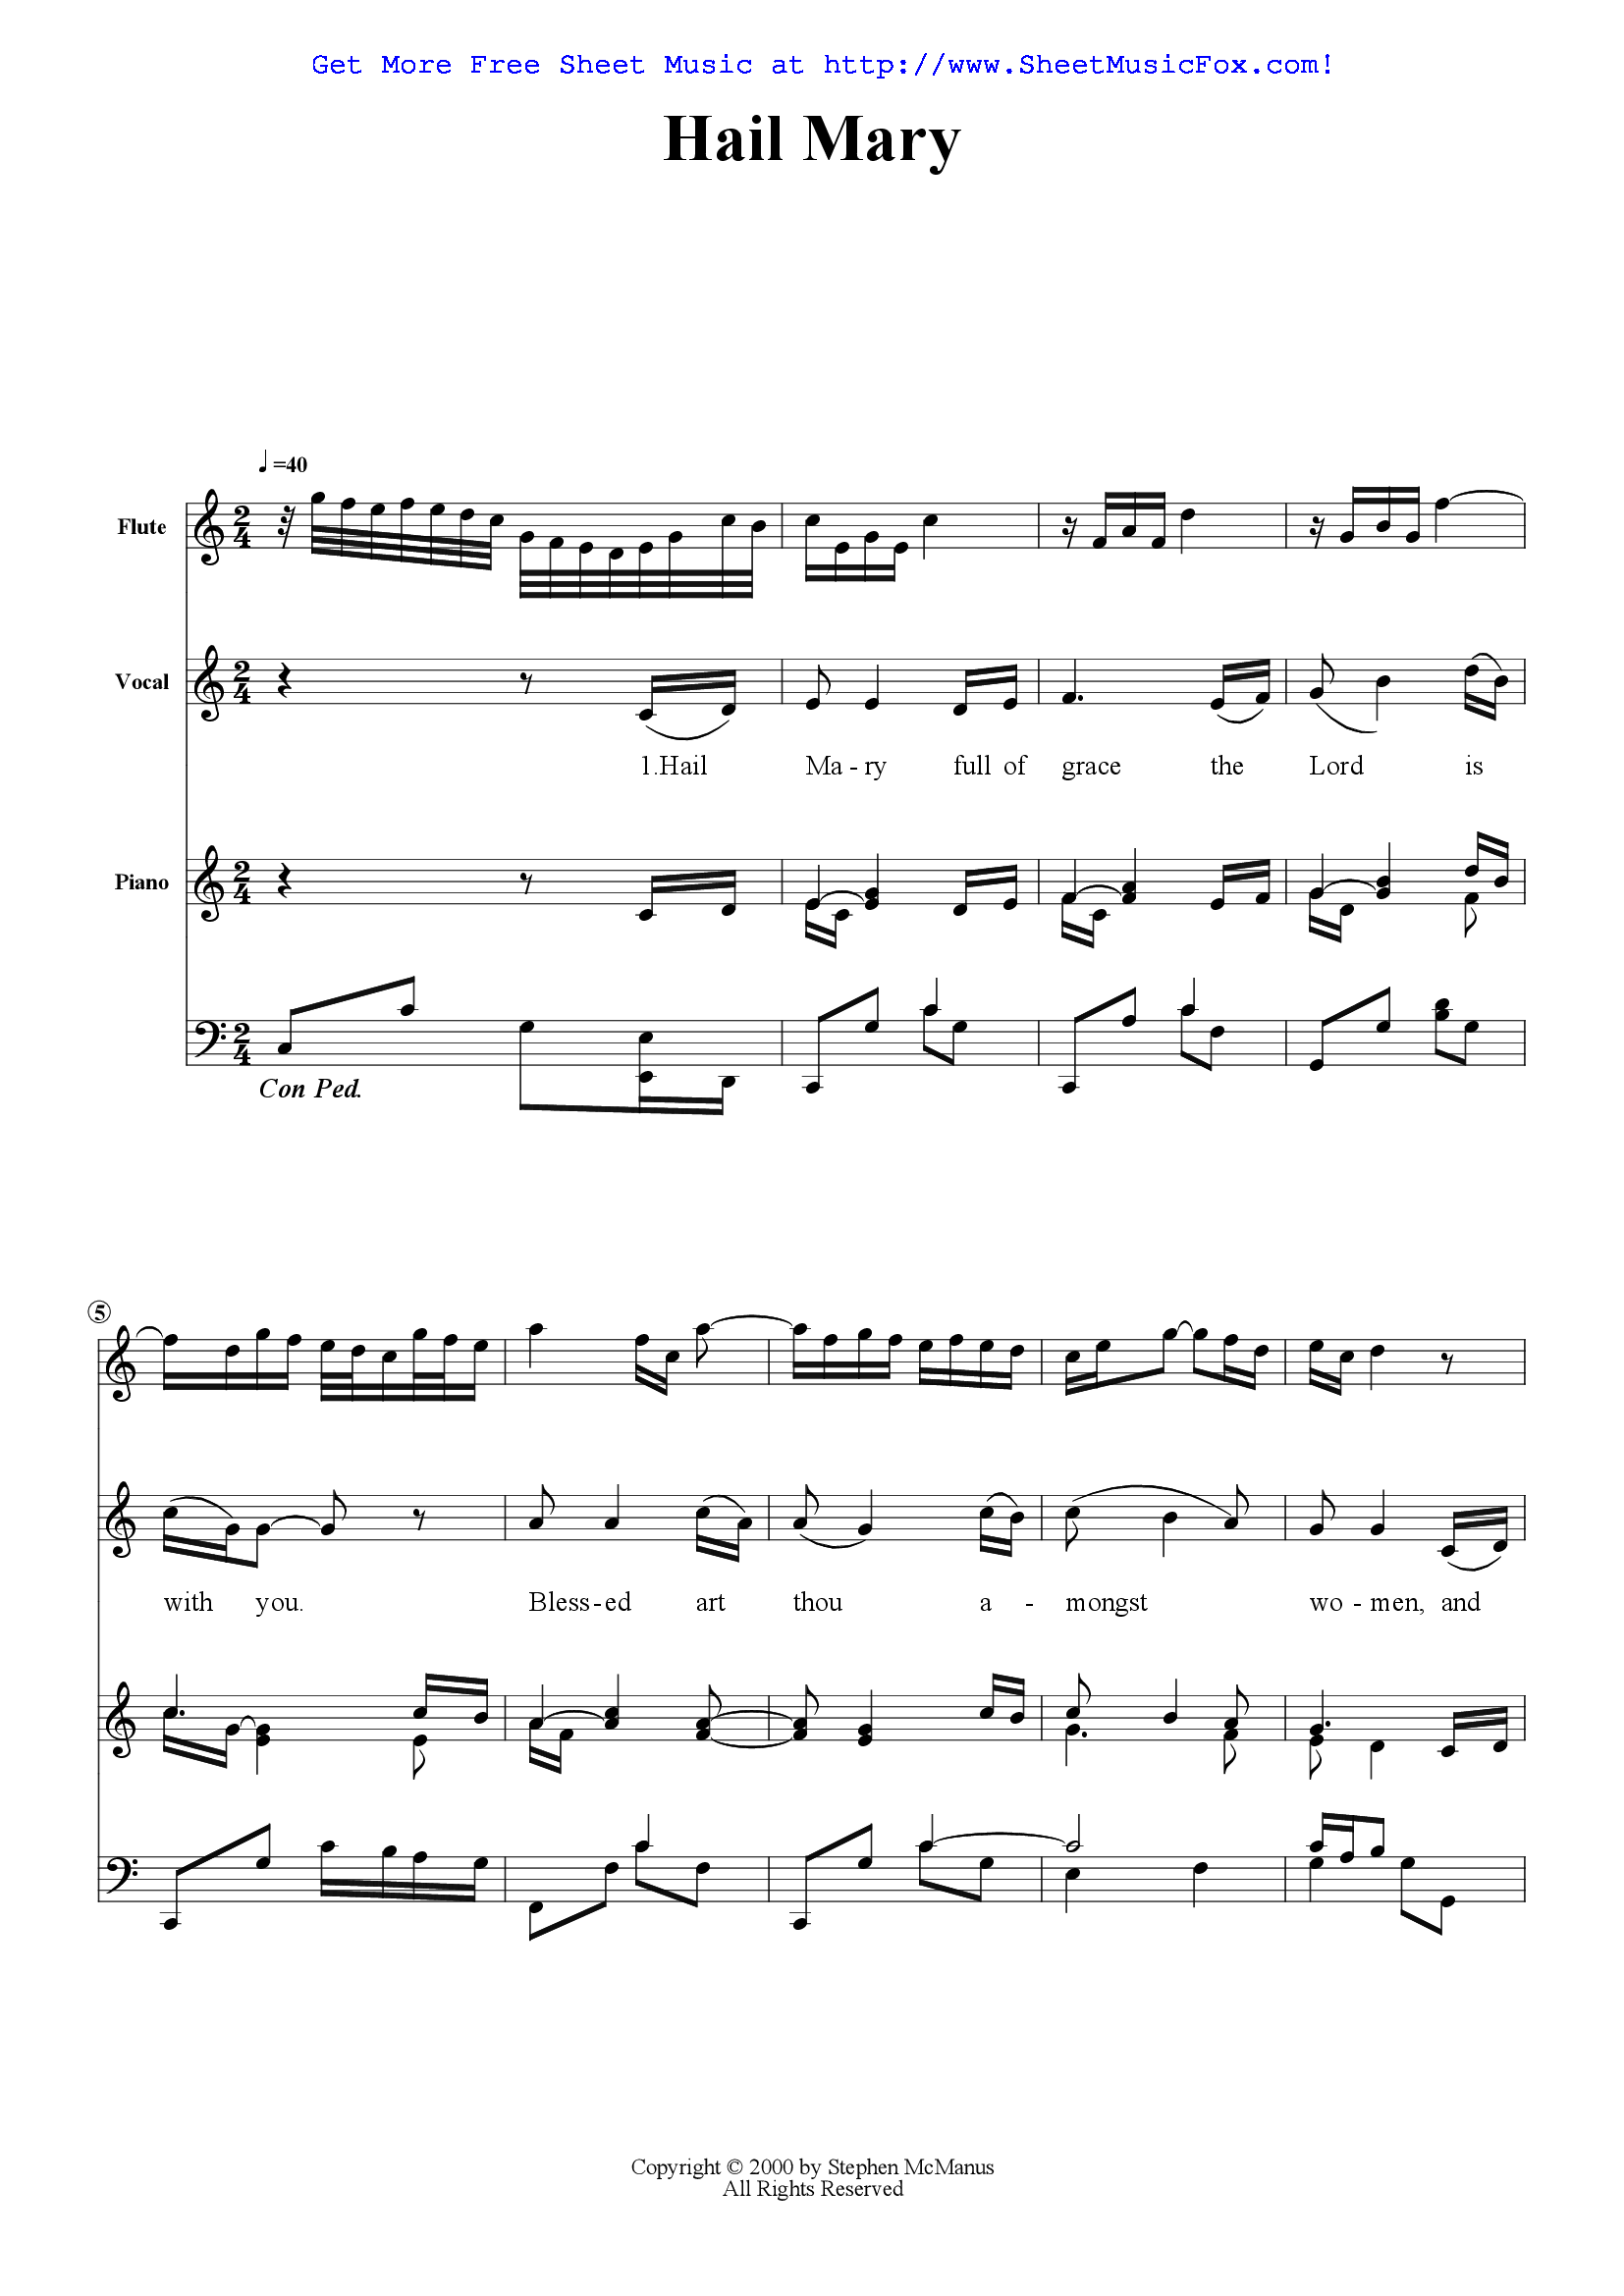 Free Sheet Music For Hail Mary Full Of Grace Mcmstephen By Stephen Mcm